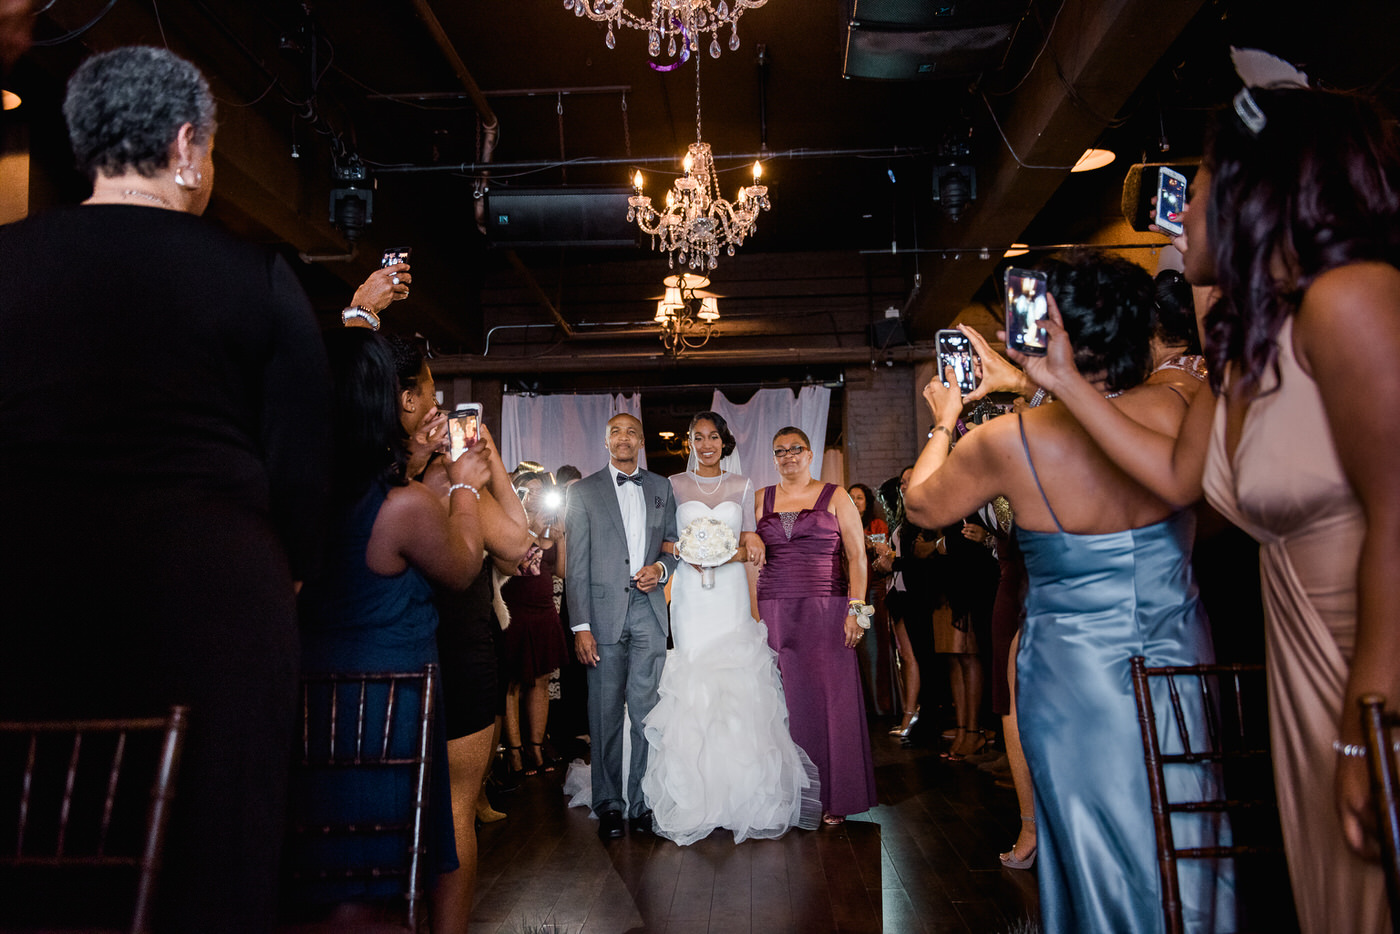 Parents walk bride down the aisle at New Year's Eve wedding in Toronto